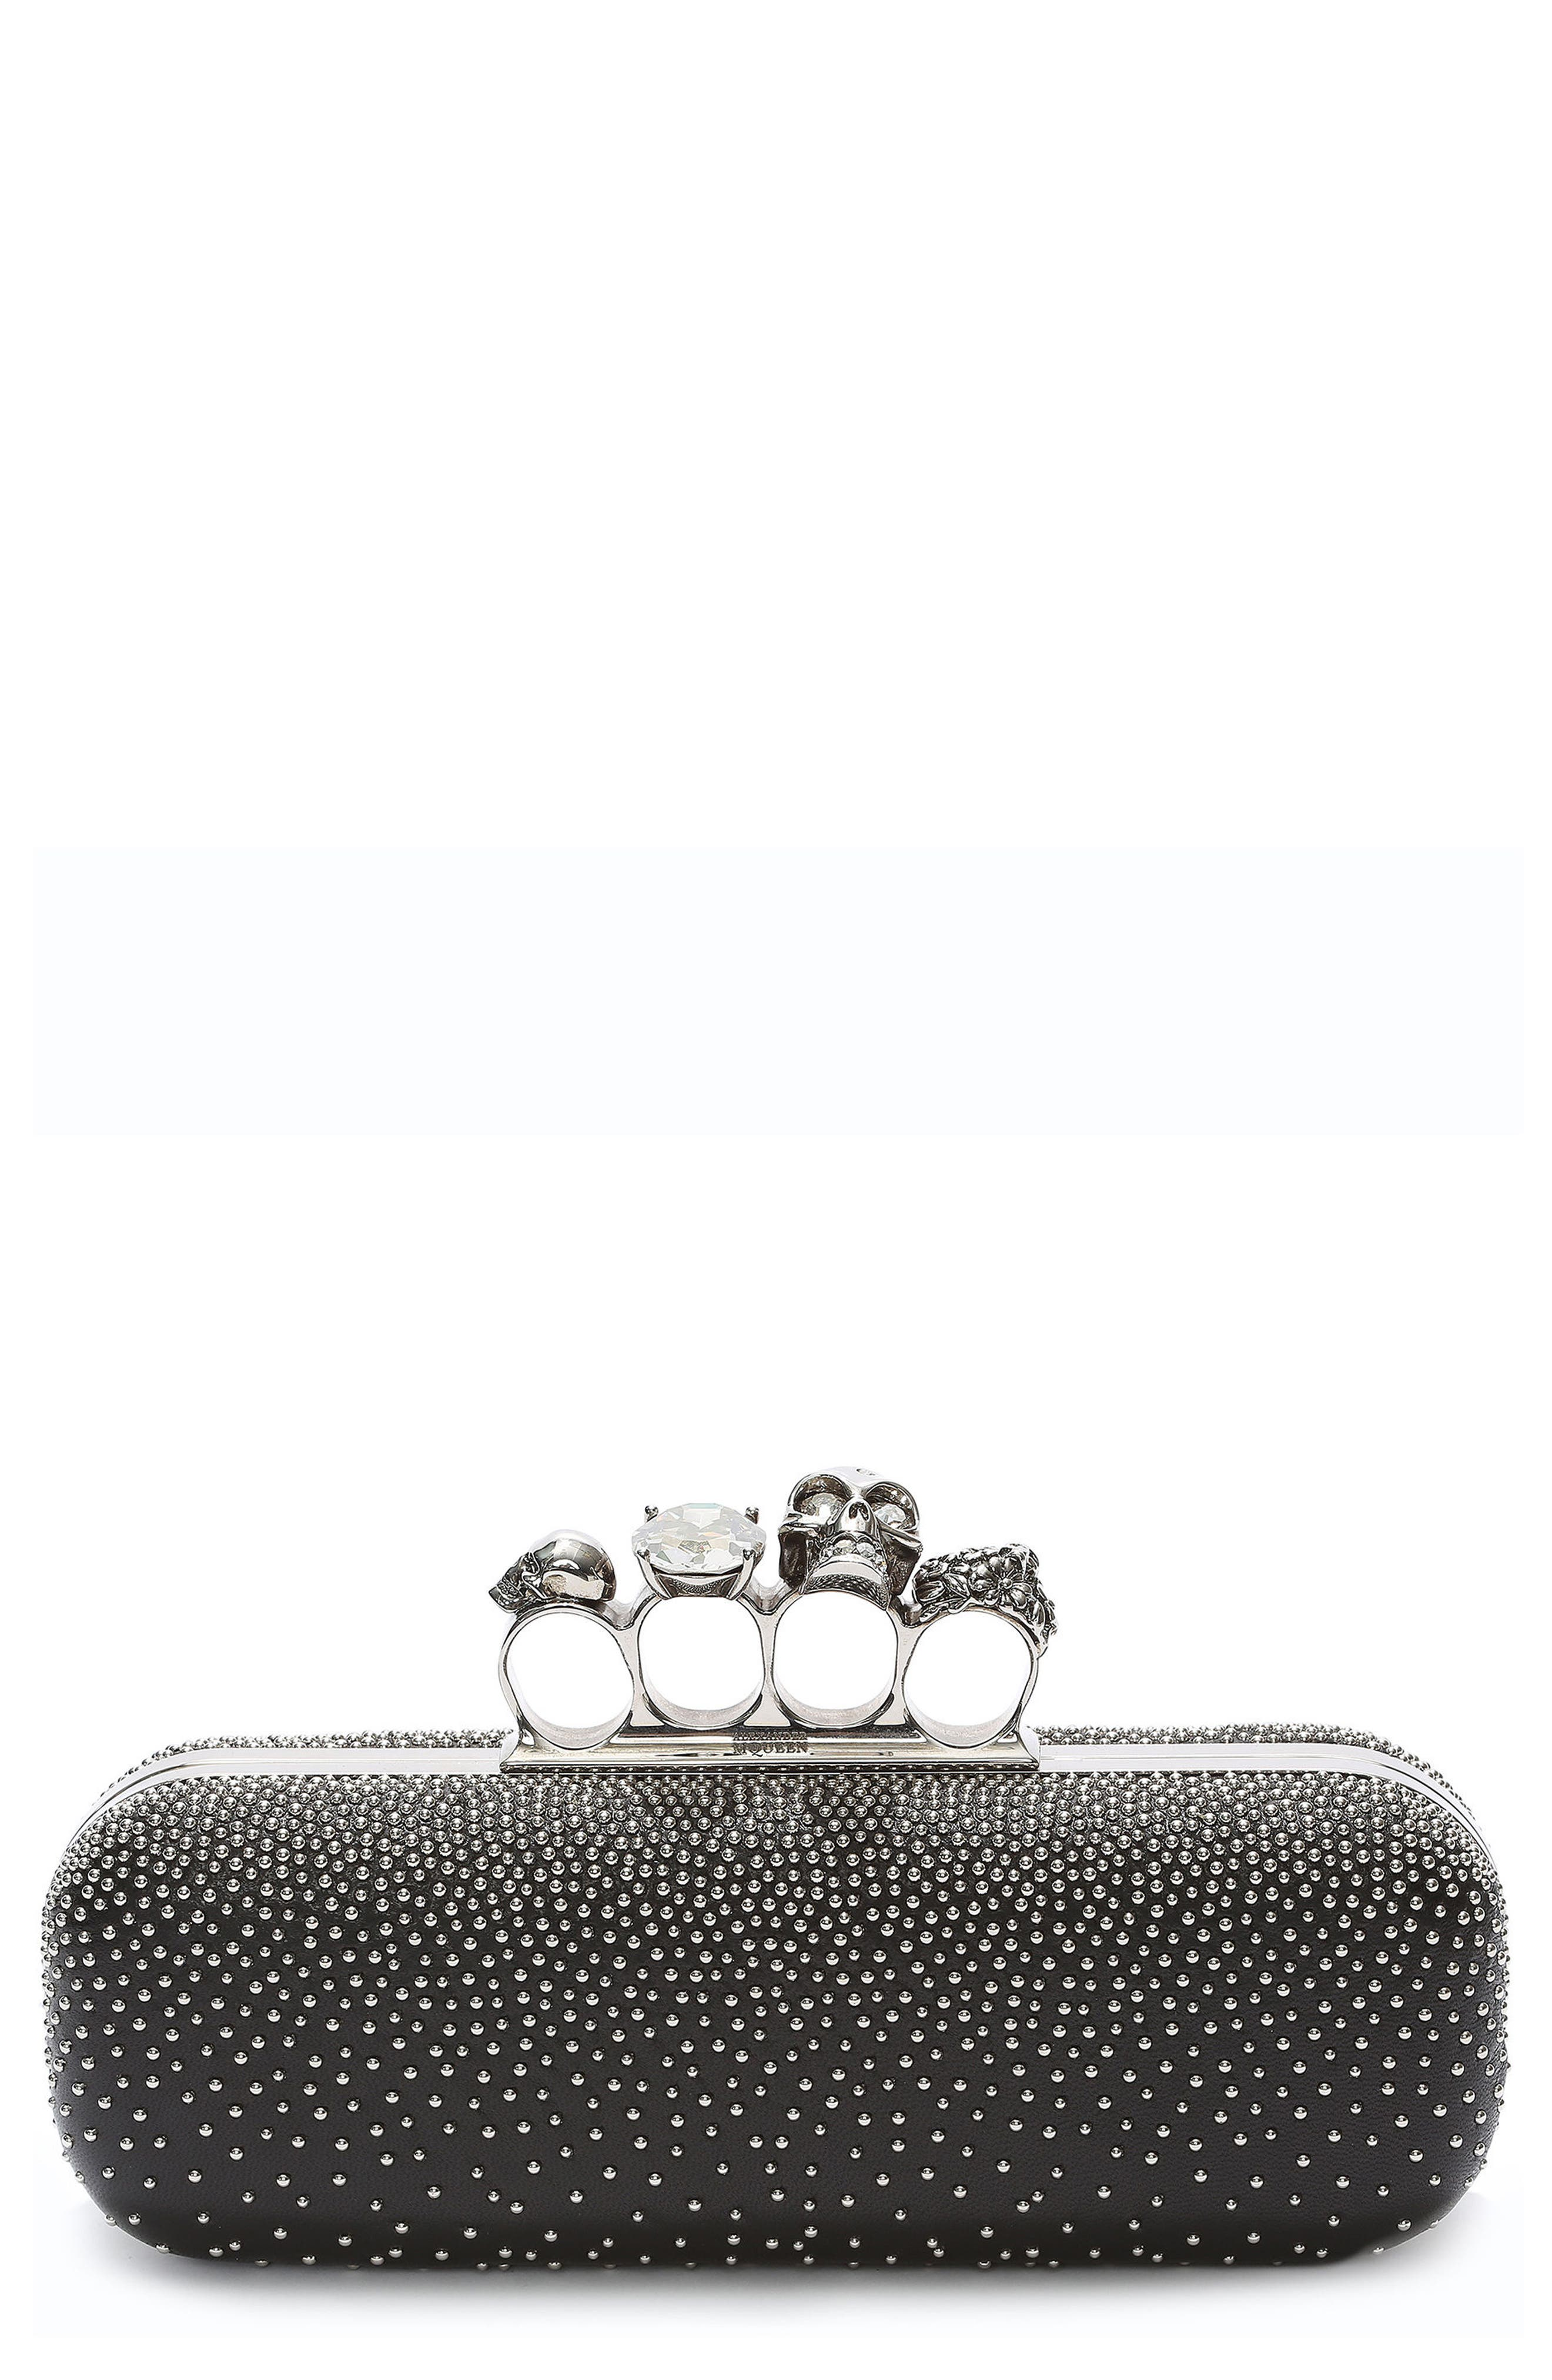 Studded Lambskin Leather Knuckle Clutch,                             Main thumbnail 1, color,                             BLACK